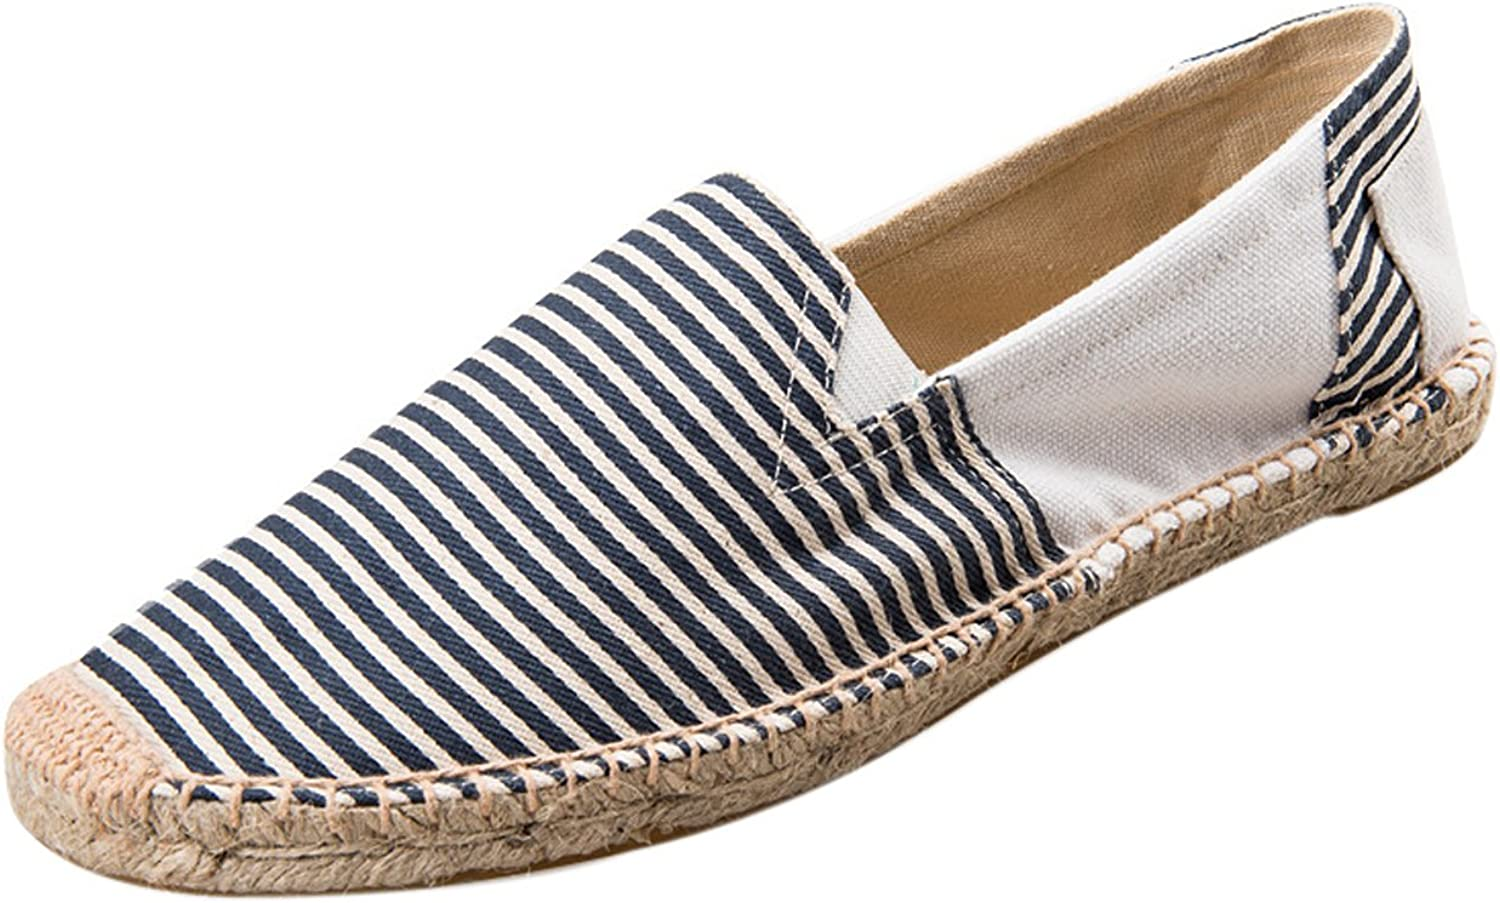 SK Studio Women Hollow Out Canvas Slip-On Sneaker shoes